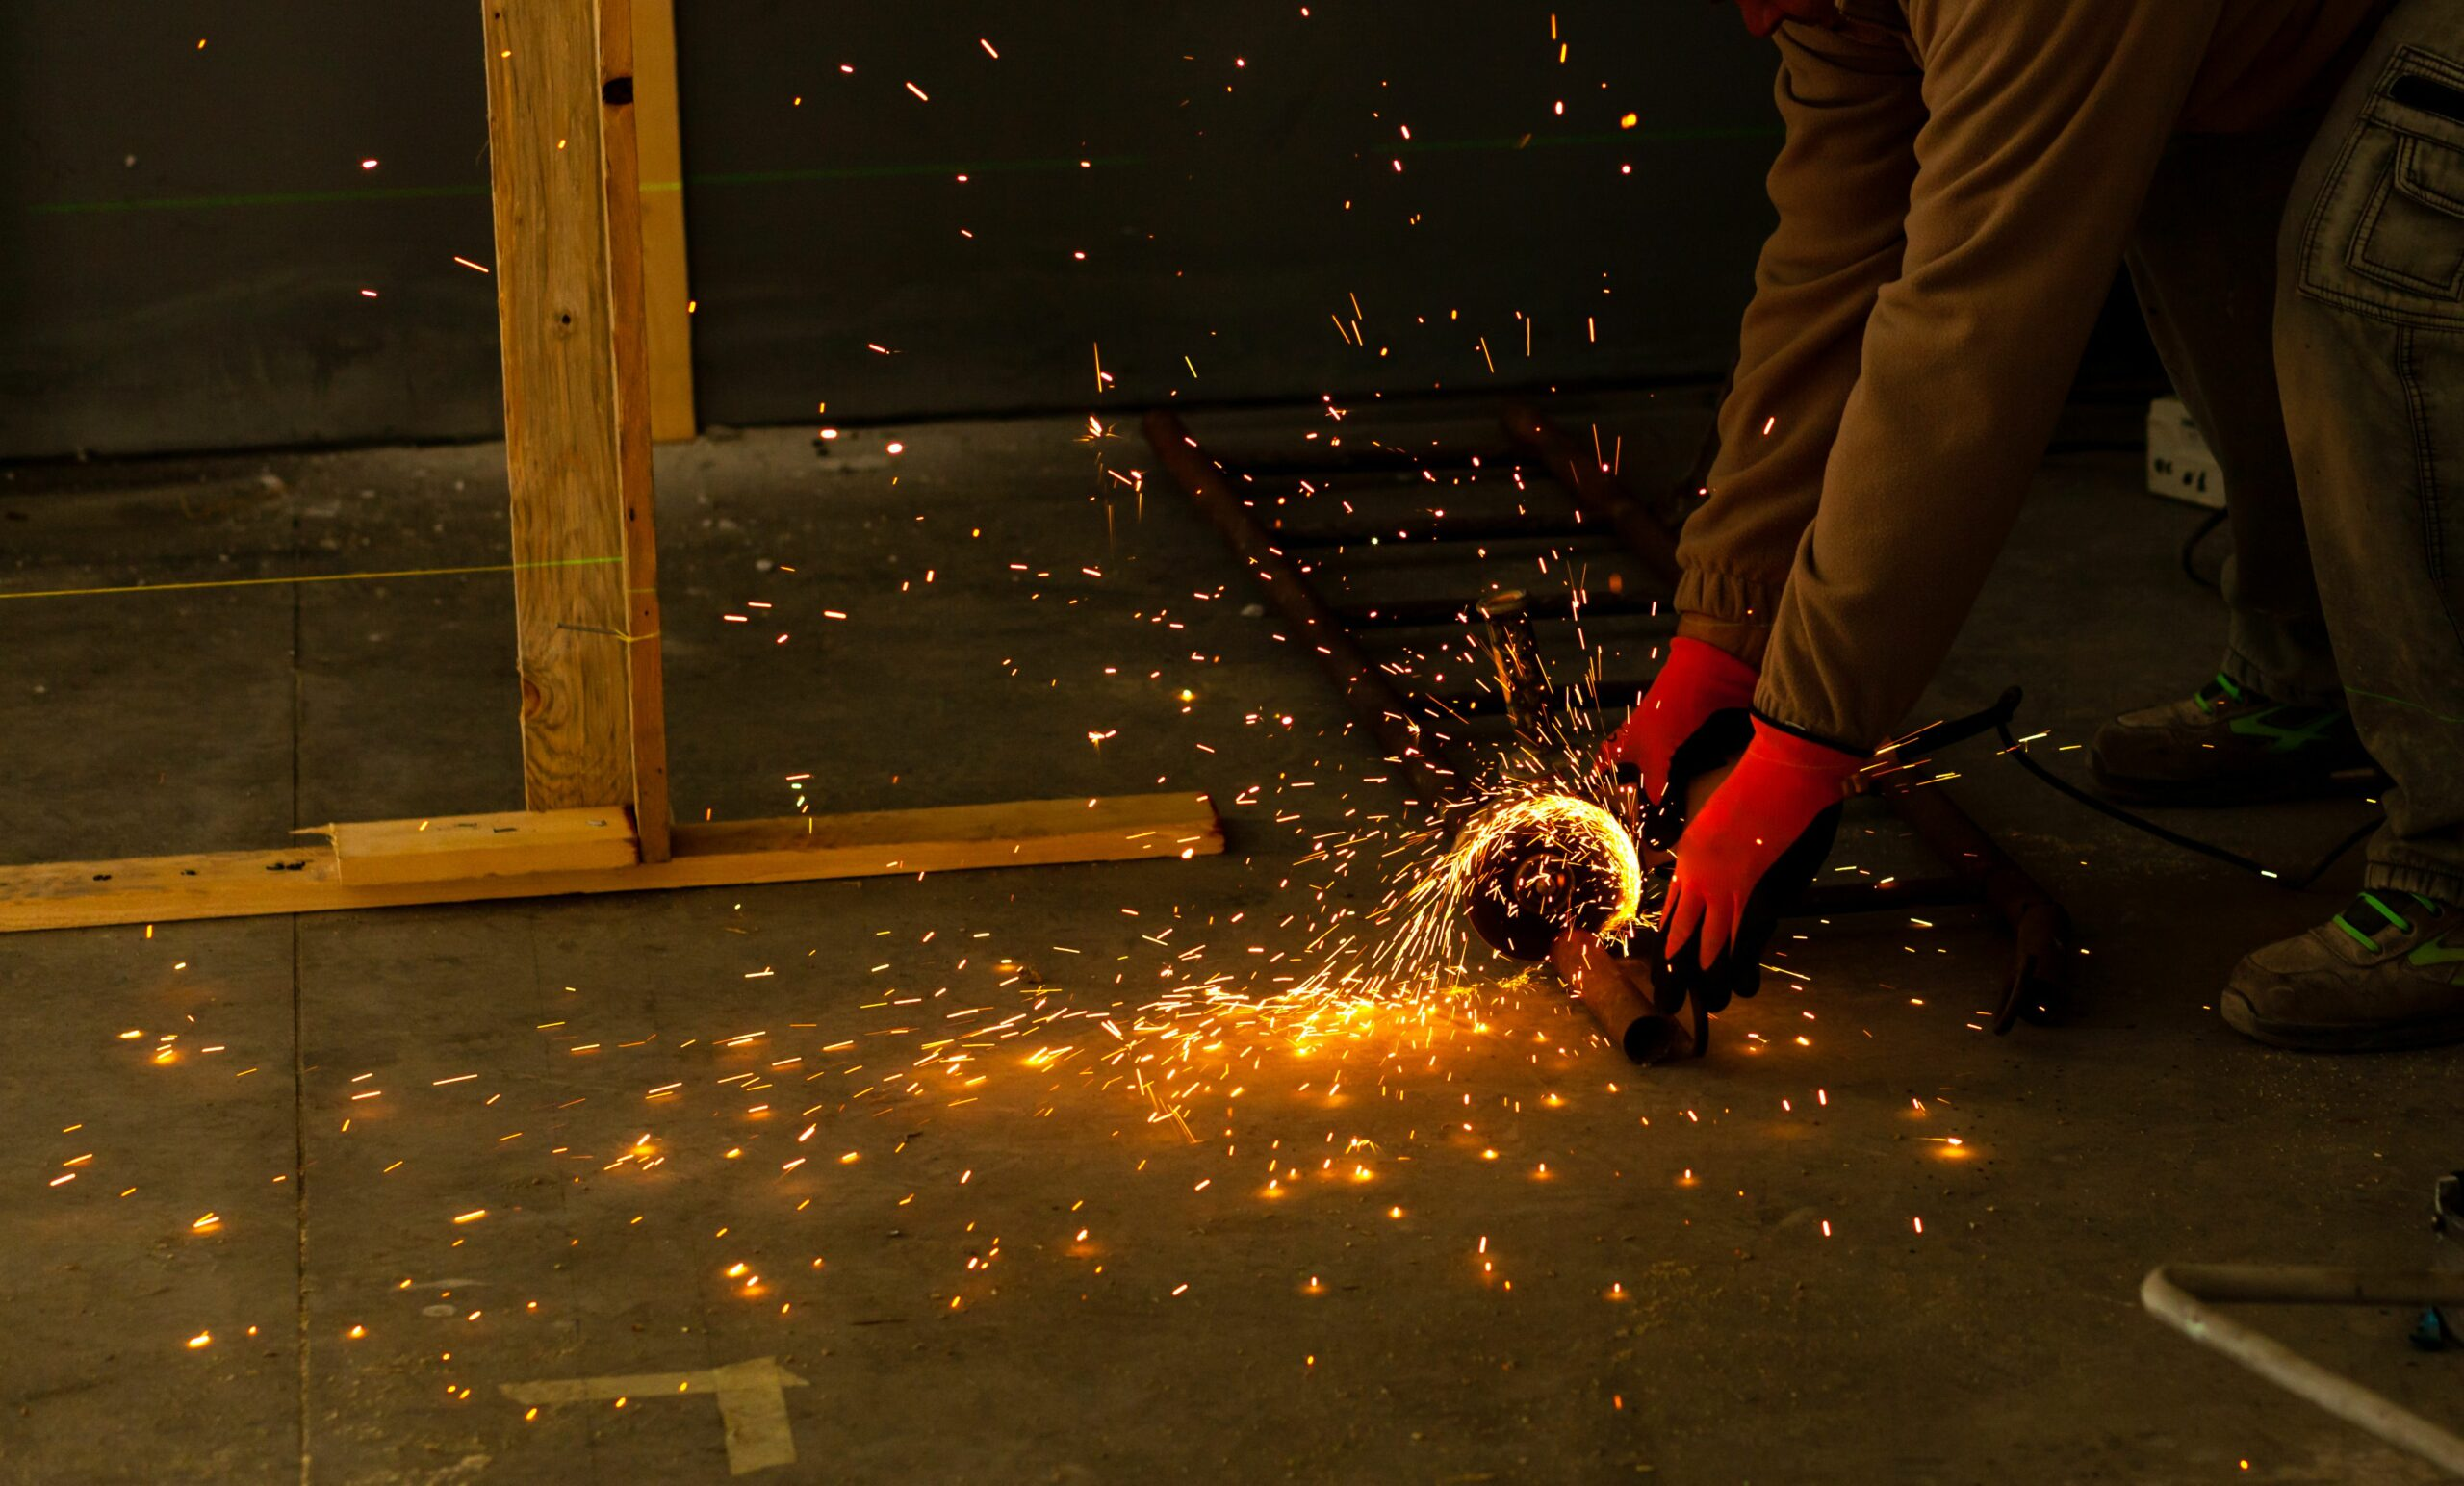 worker-using-the-grinder-many-sparks-for-iron-cutting